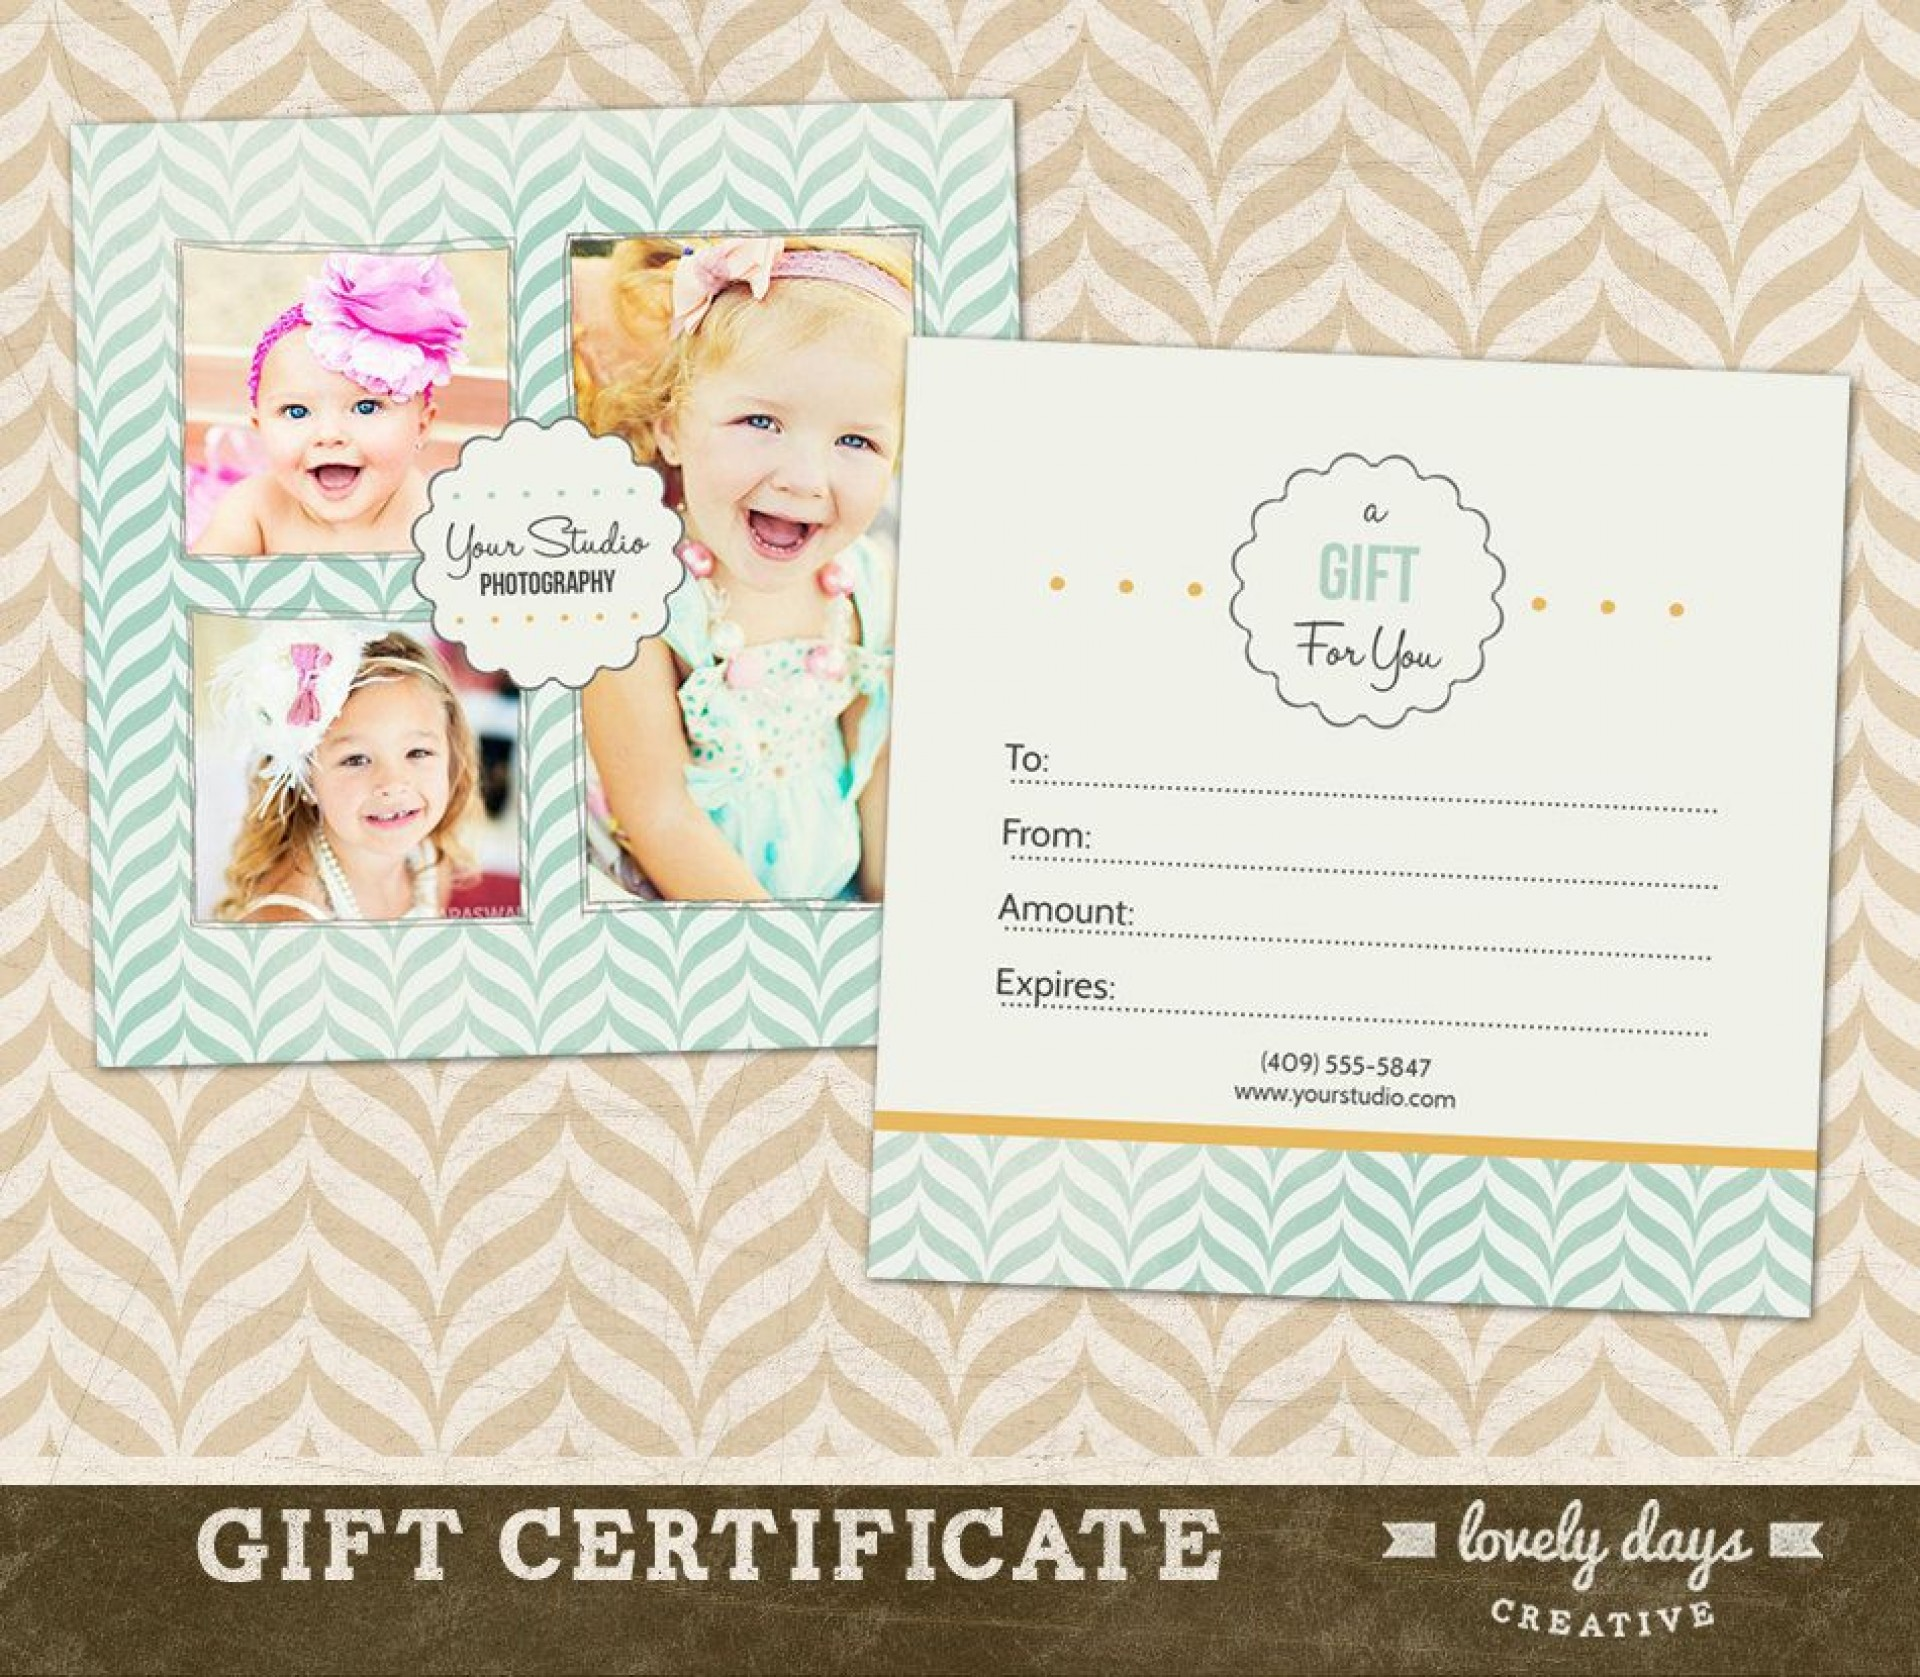 002 Amazing Photography Gift Certificate Template Photoshop Free High Resolution 1920